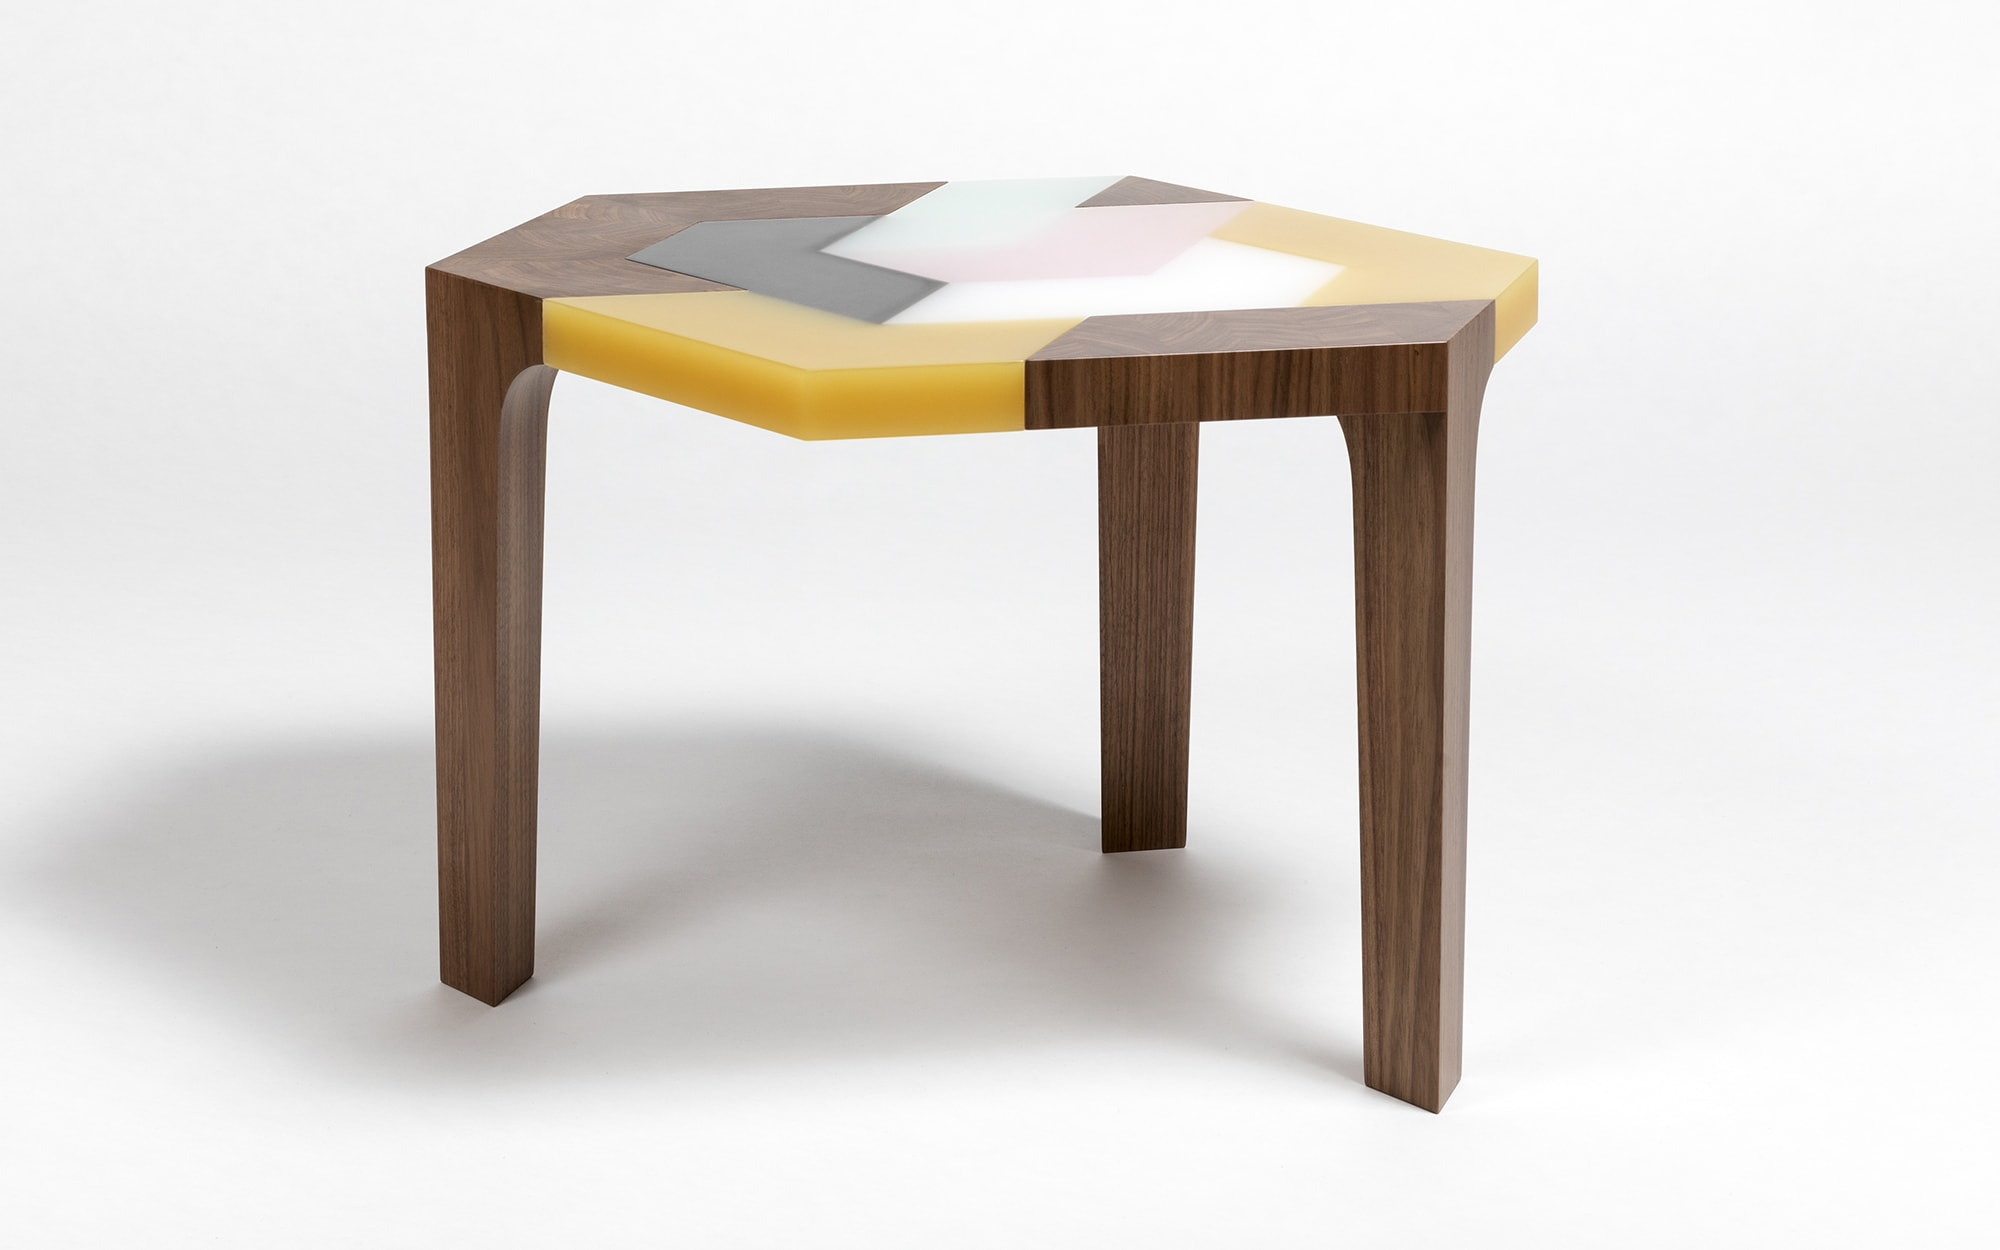 Hella Jongerius Mini Swatch Coffee Table